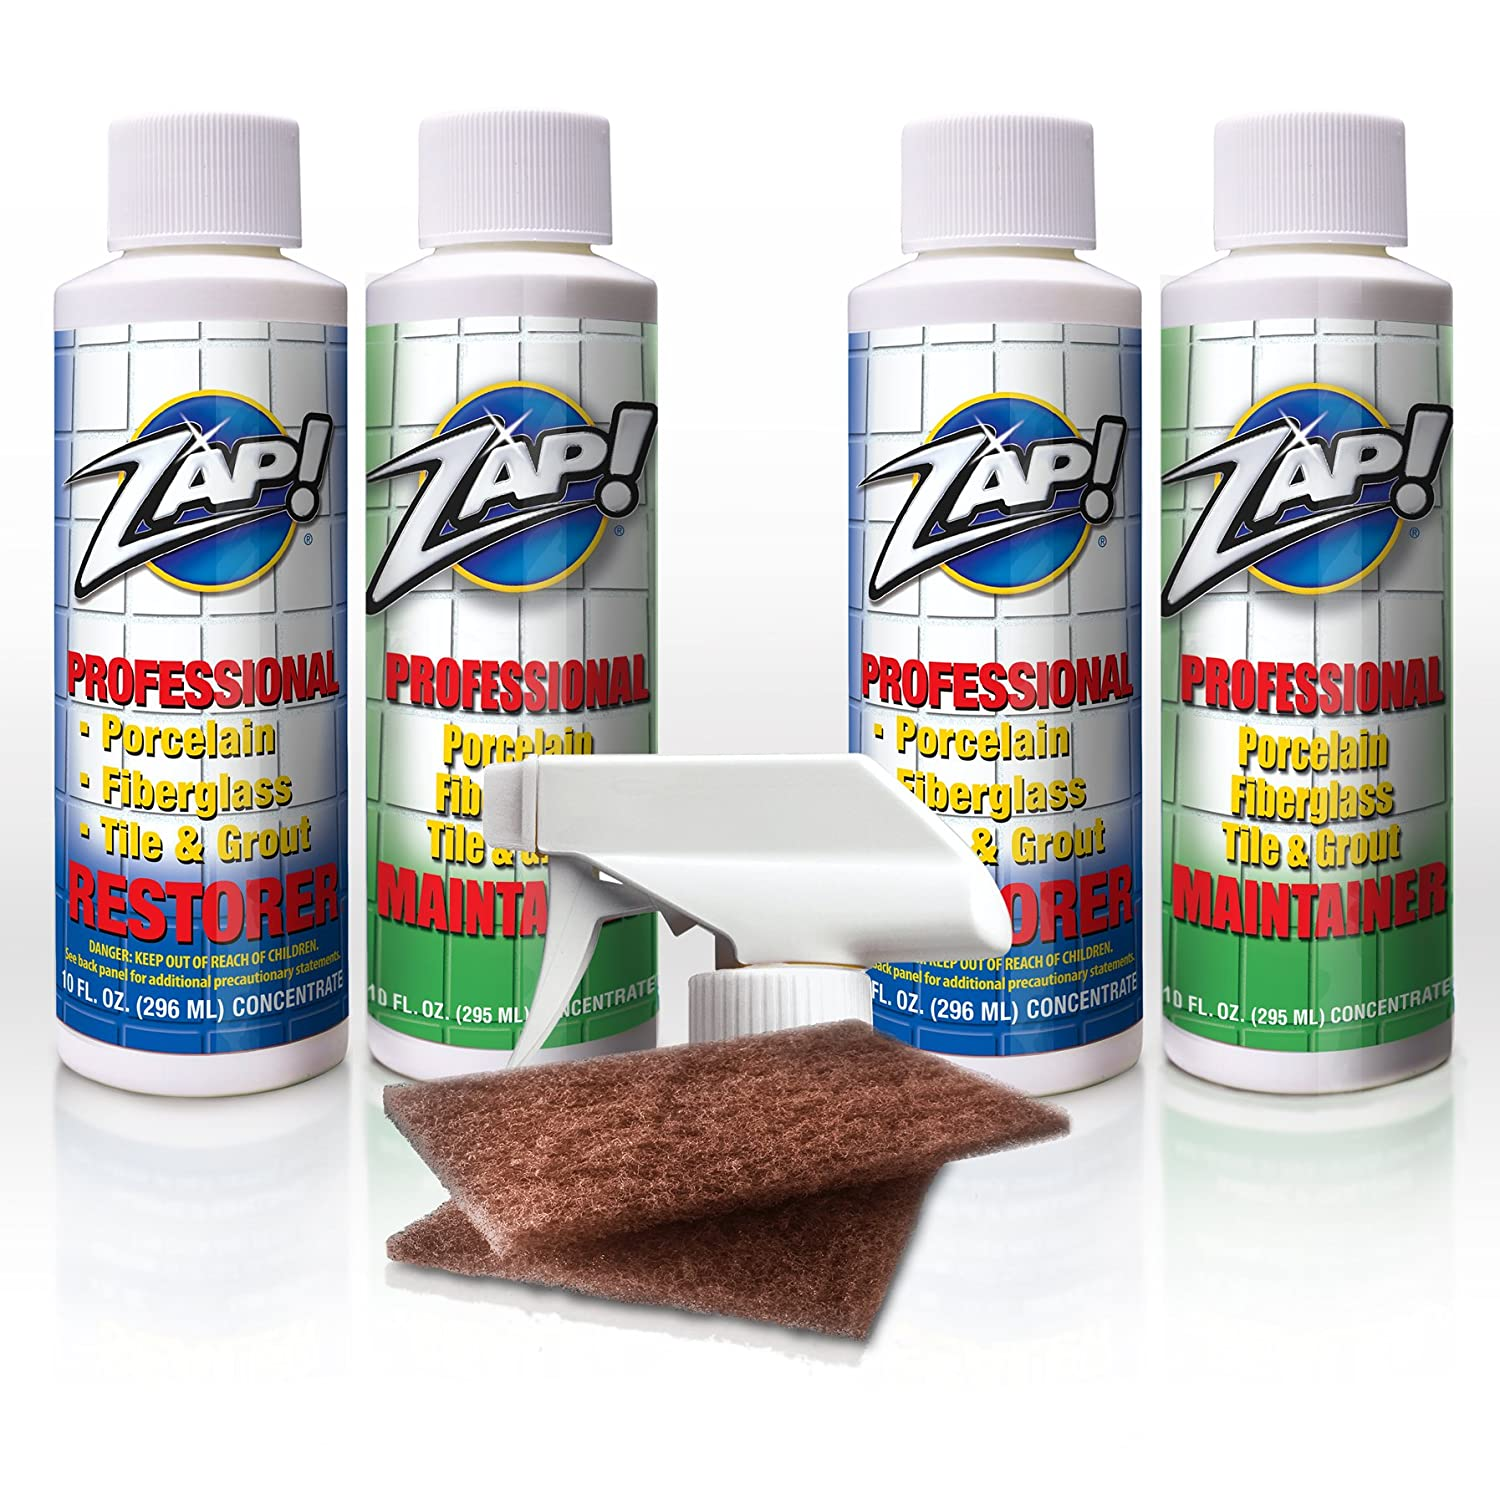 Zap! Professional Restorer & Maintainer for Porcelain, Tile & Grout, Fiberglass and Real Metals Like Chrome, Brass and Copper